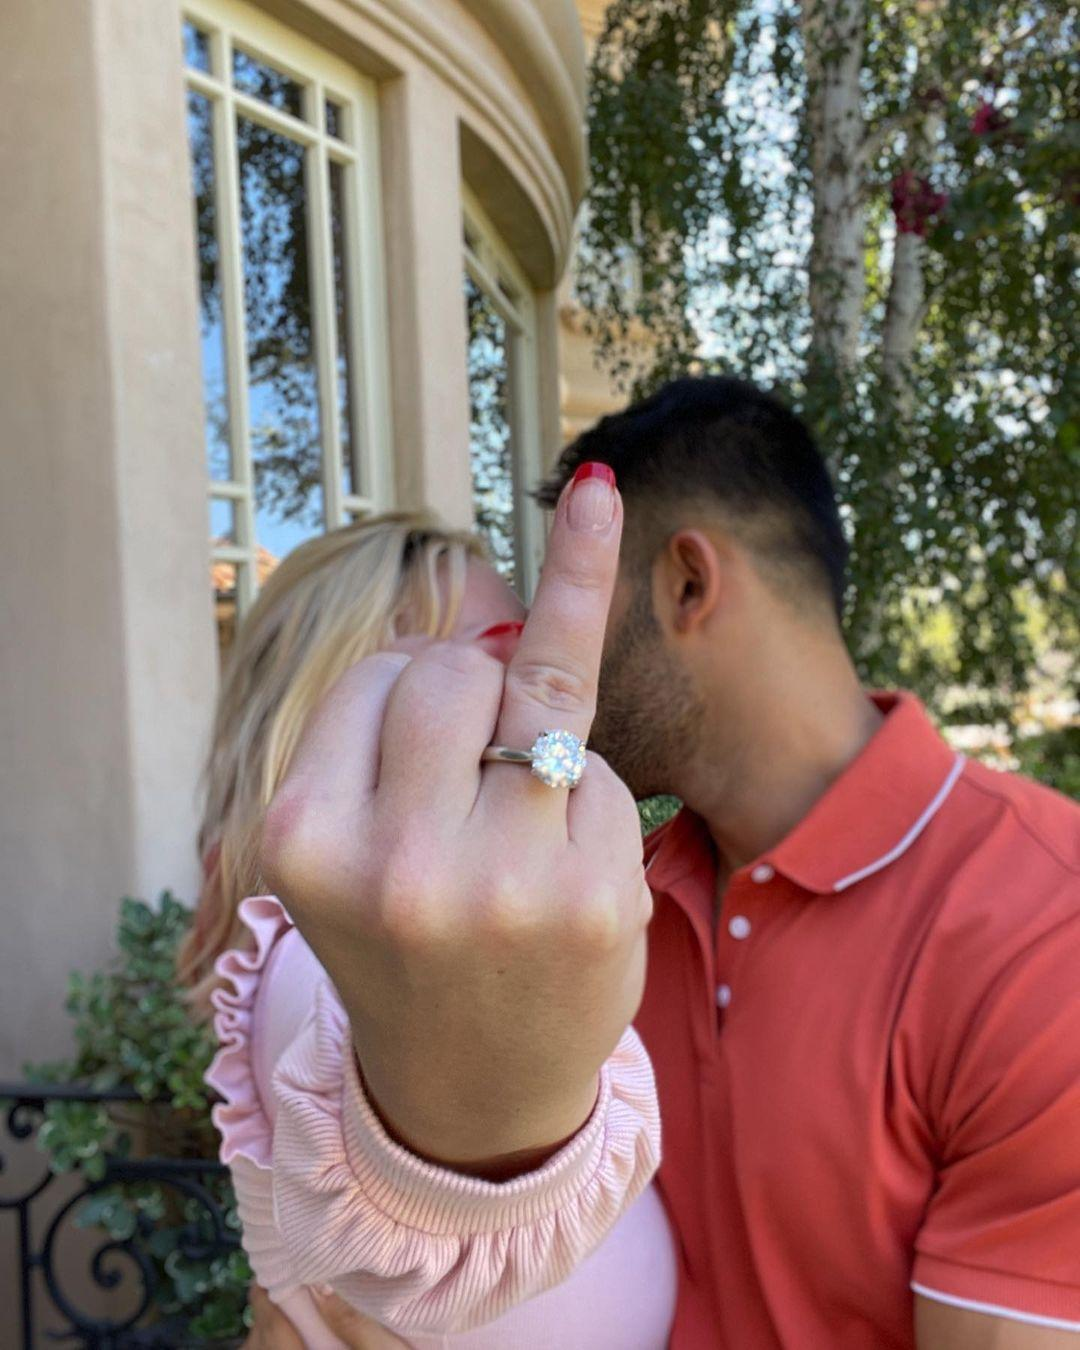 Britney Spears Buying A Home With Sam Asghari After Conservatorship Ends